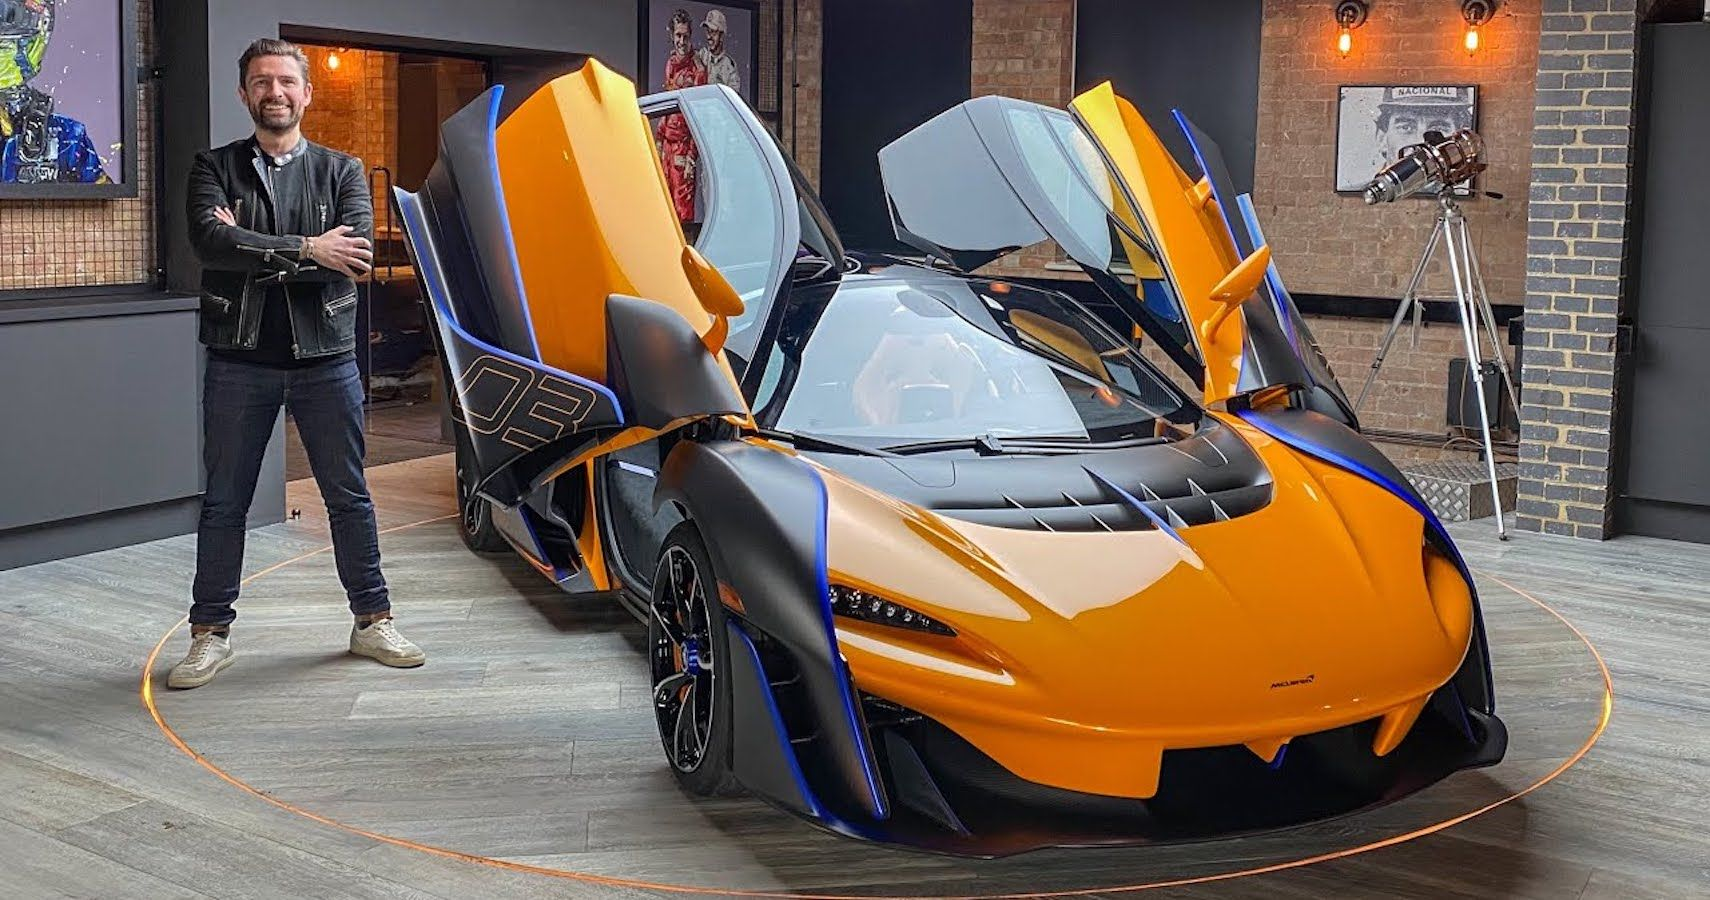 Get To Know The Extreme McLaren Sabre Supercar With This In-Depth Breakdown